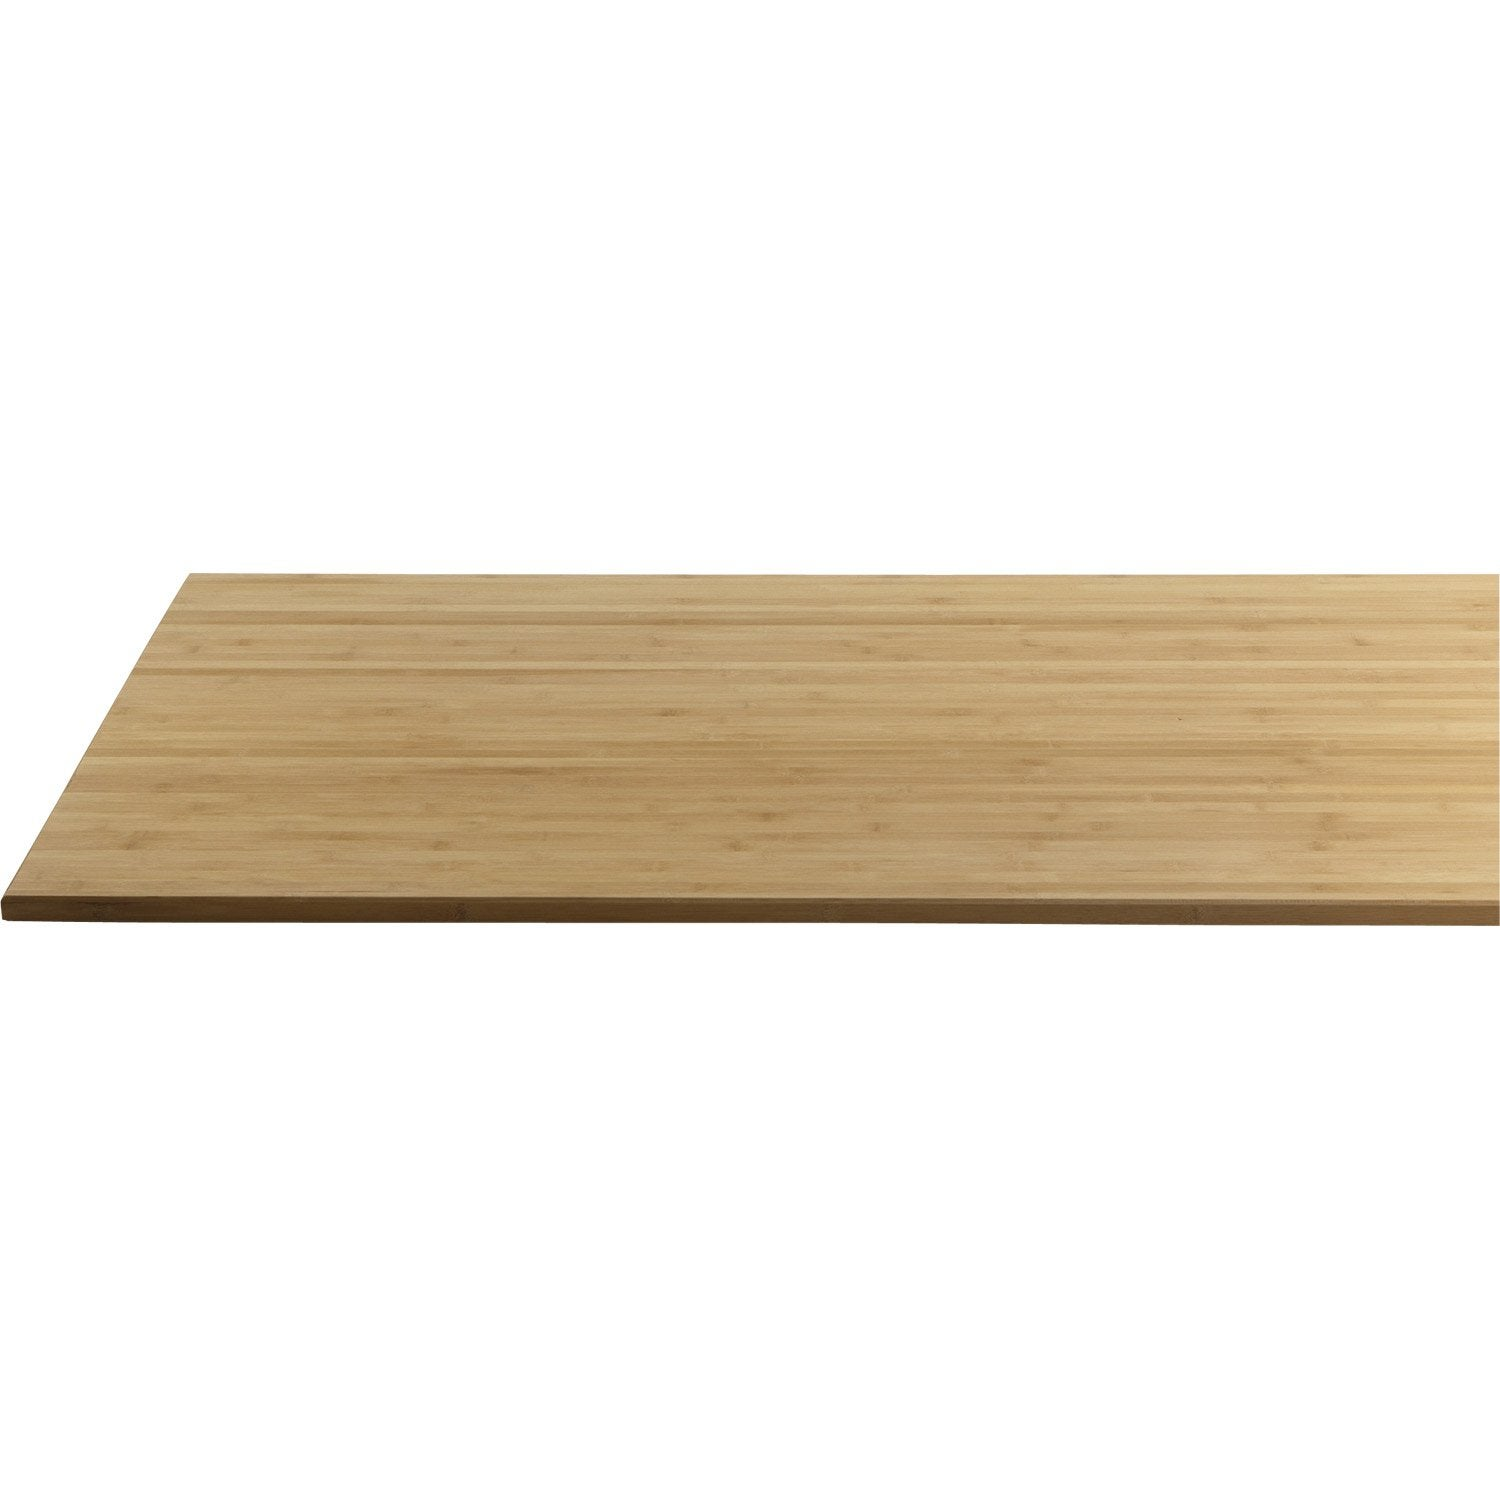 Plateau de table bambou x cm x mm for Bureau 90 cm largeur